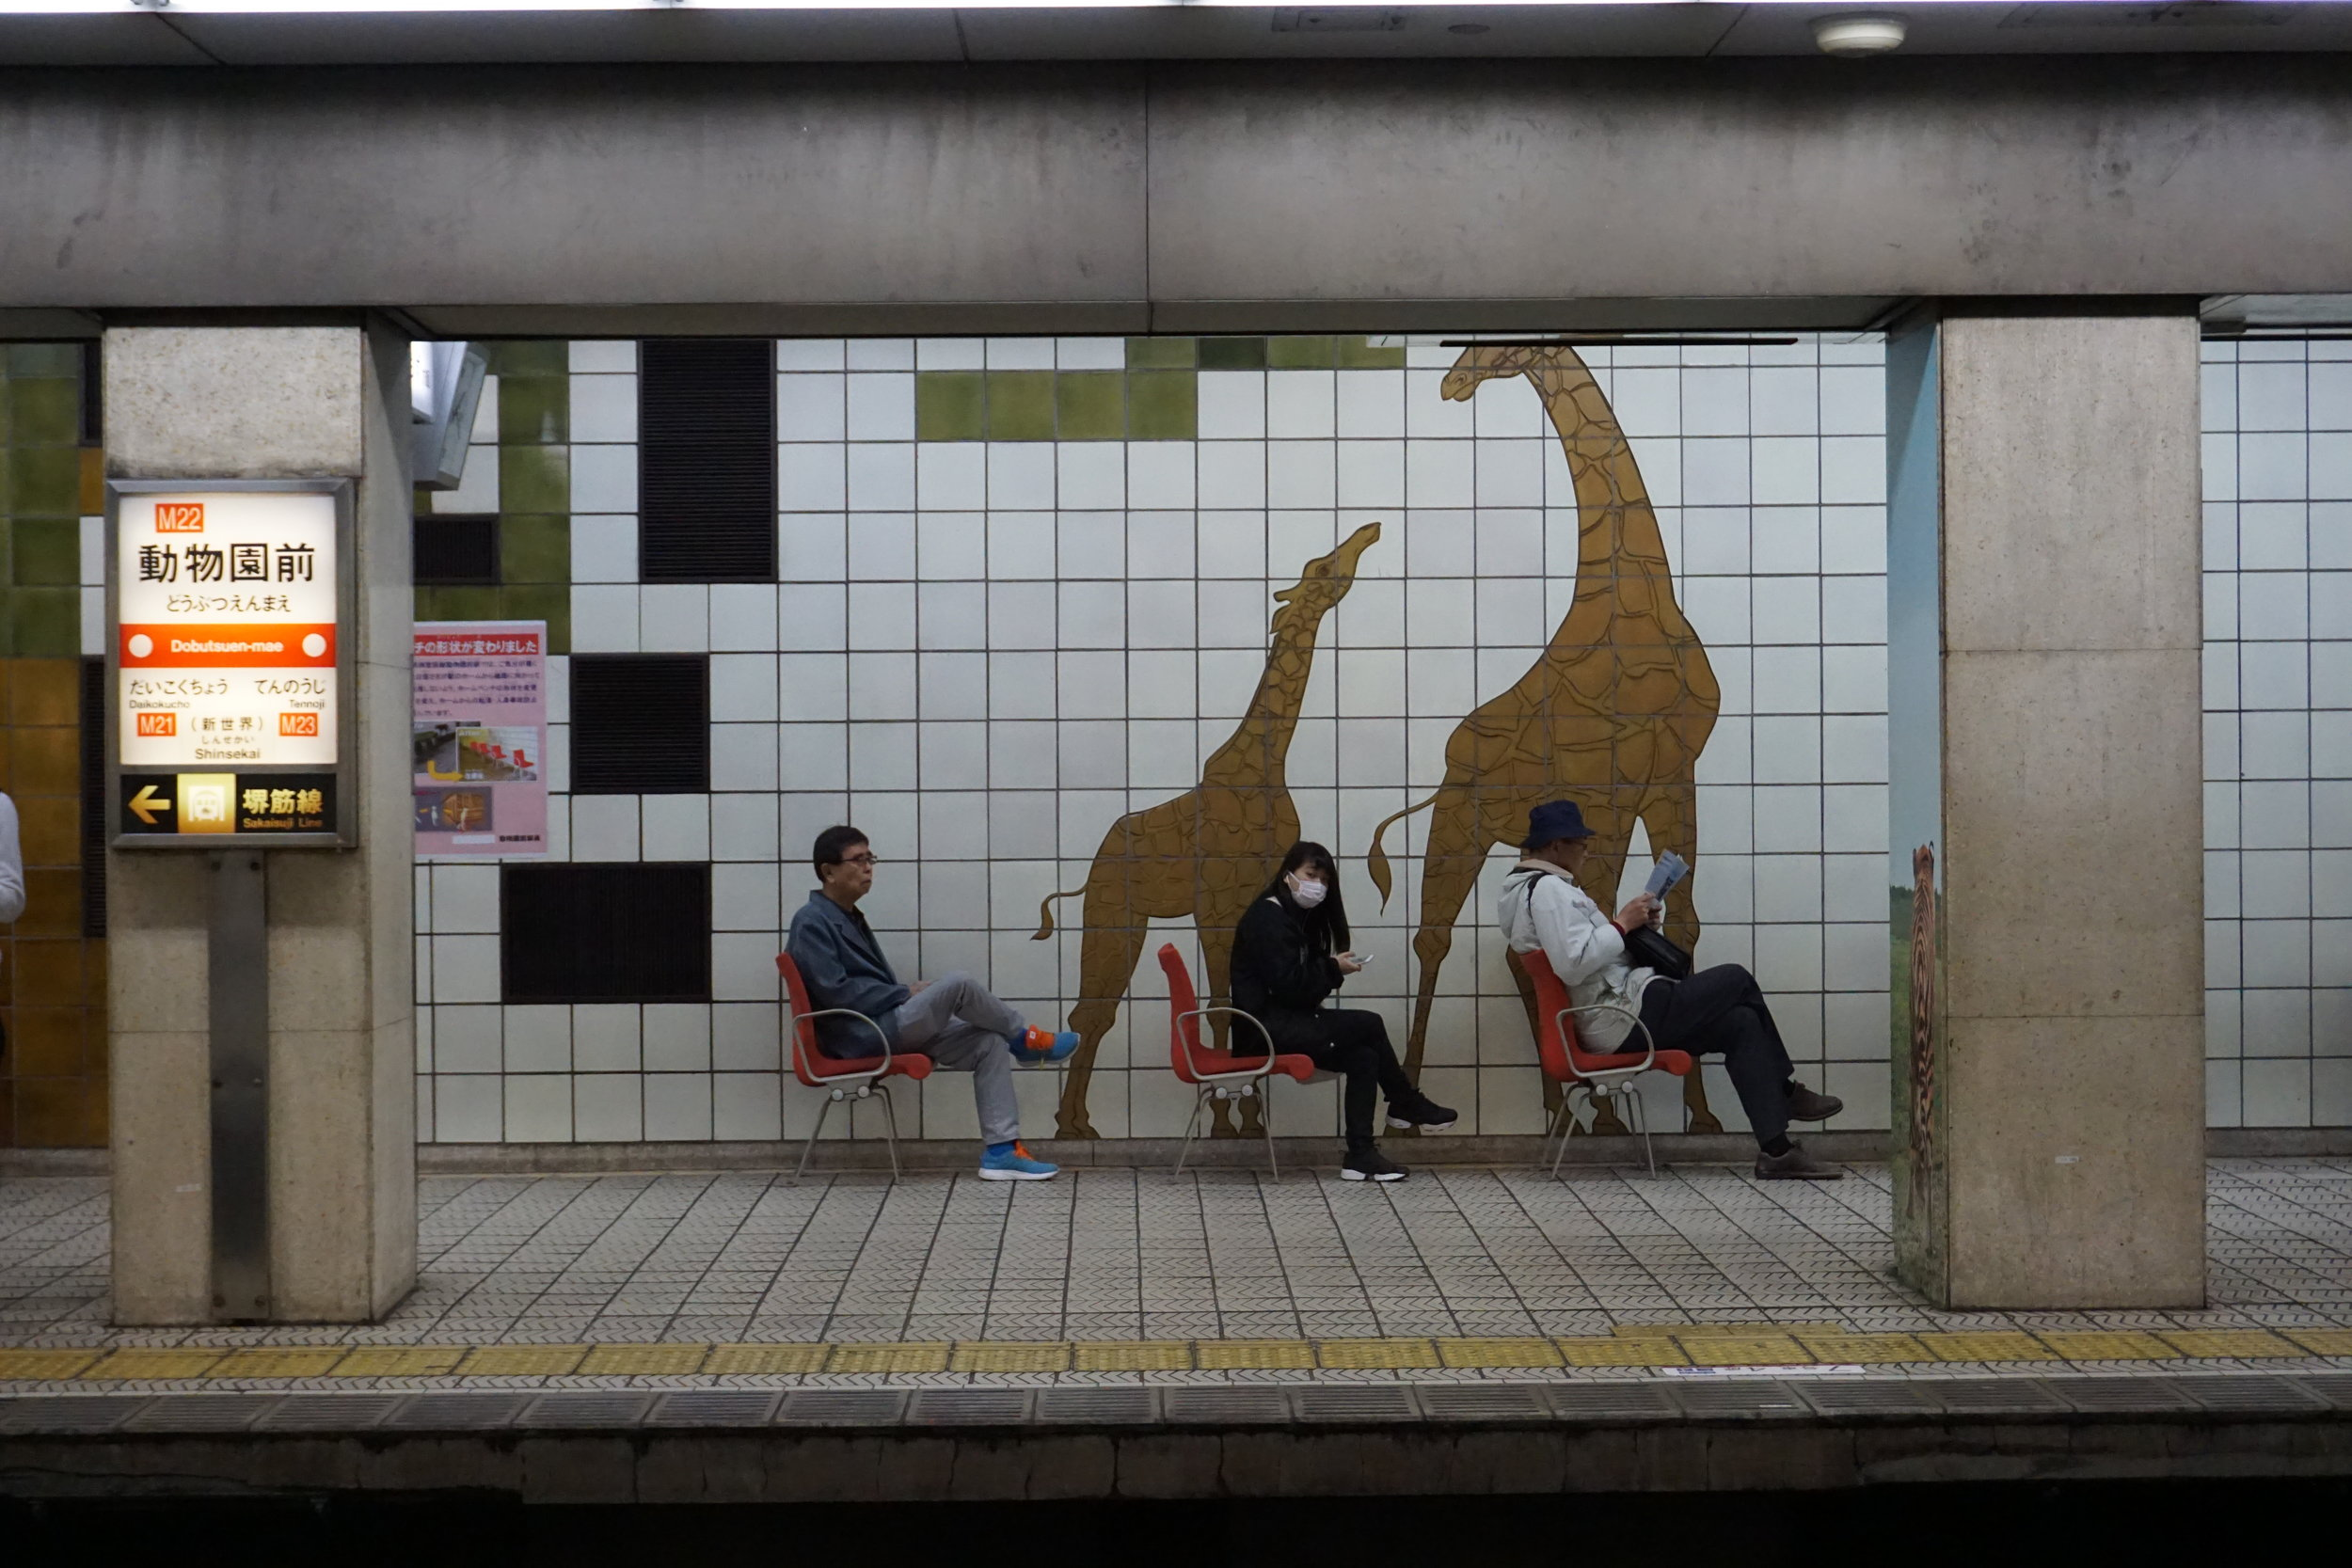 [Image description: photograph of three people sitting in chairs on a train platform. On the wall behind them is a mural of two giraffes.]